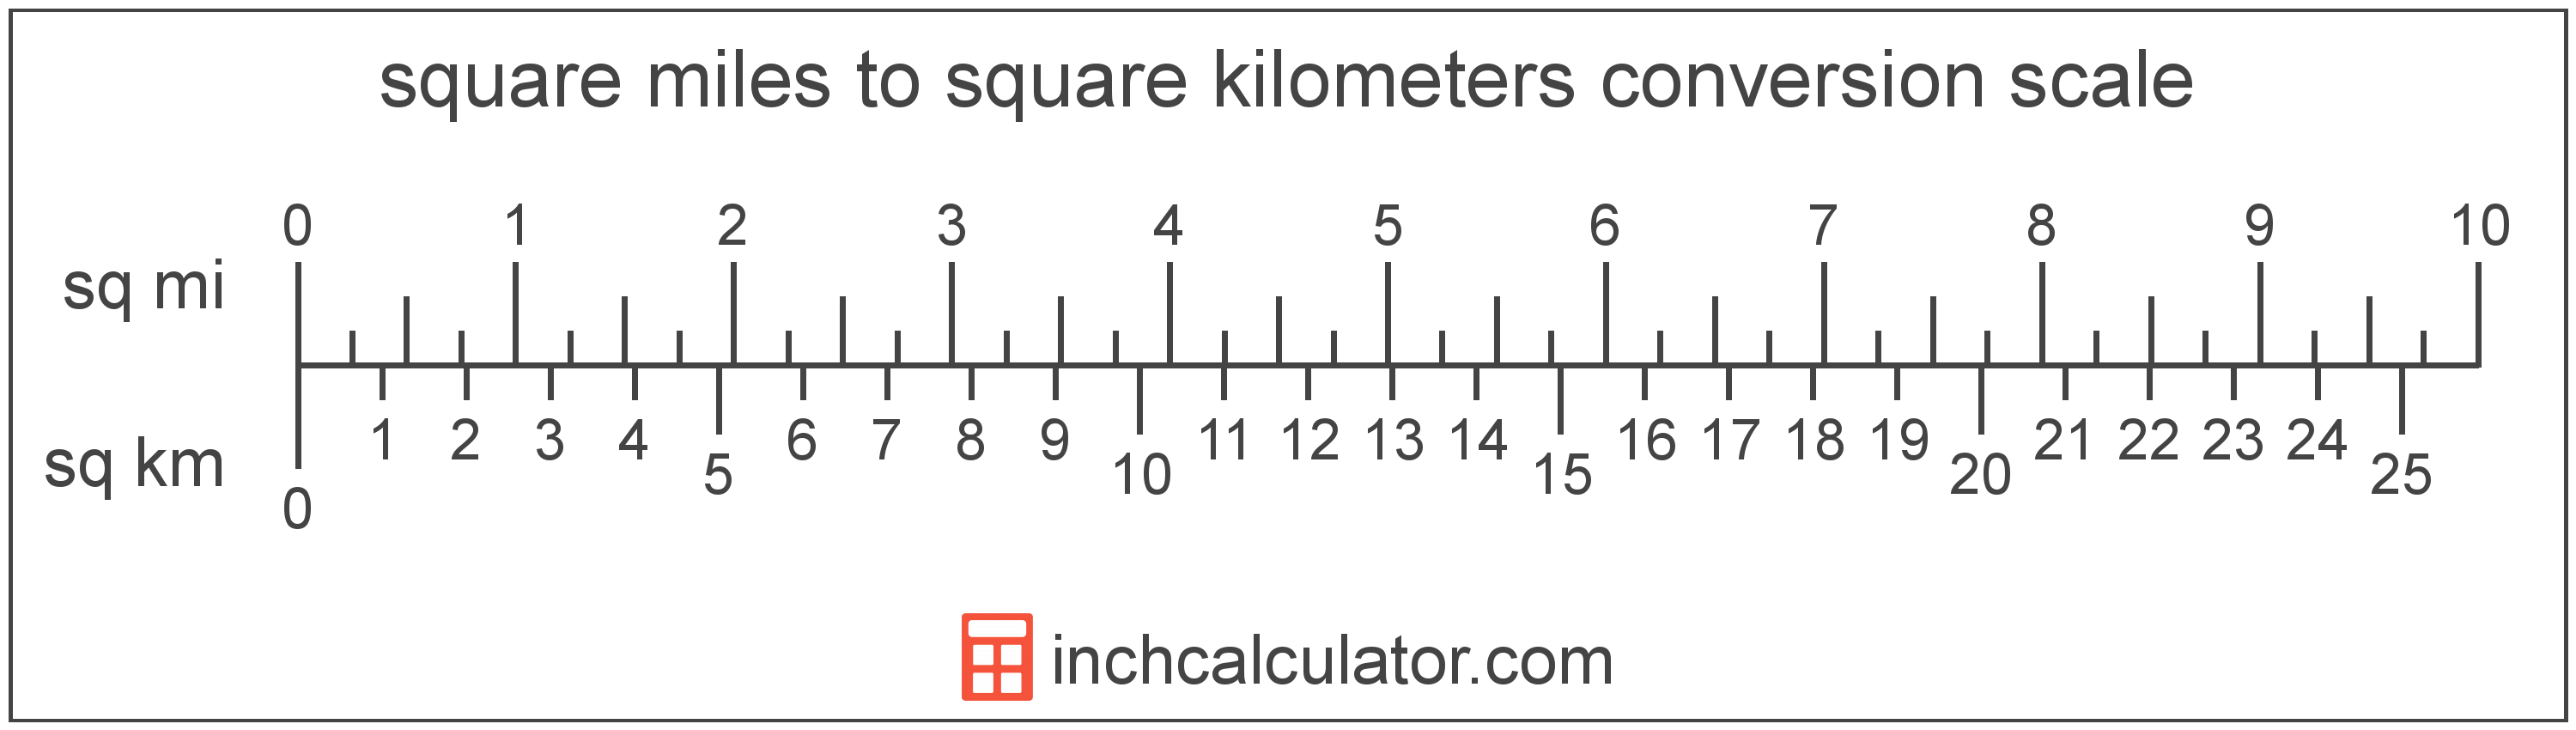 conversion scale showing square miles and equivalent square kilometers area values